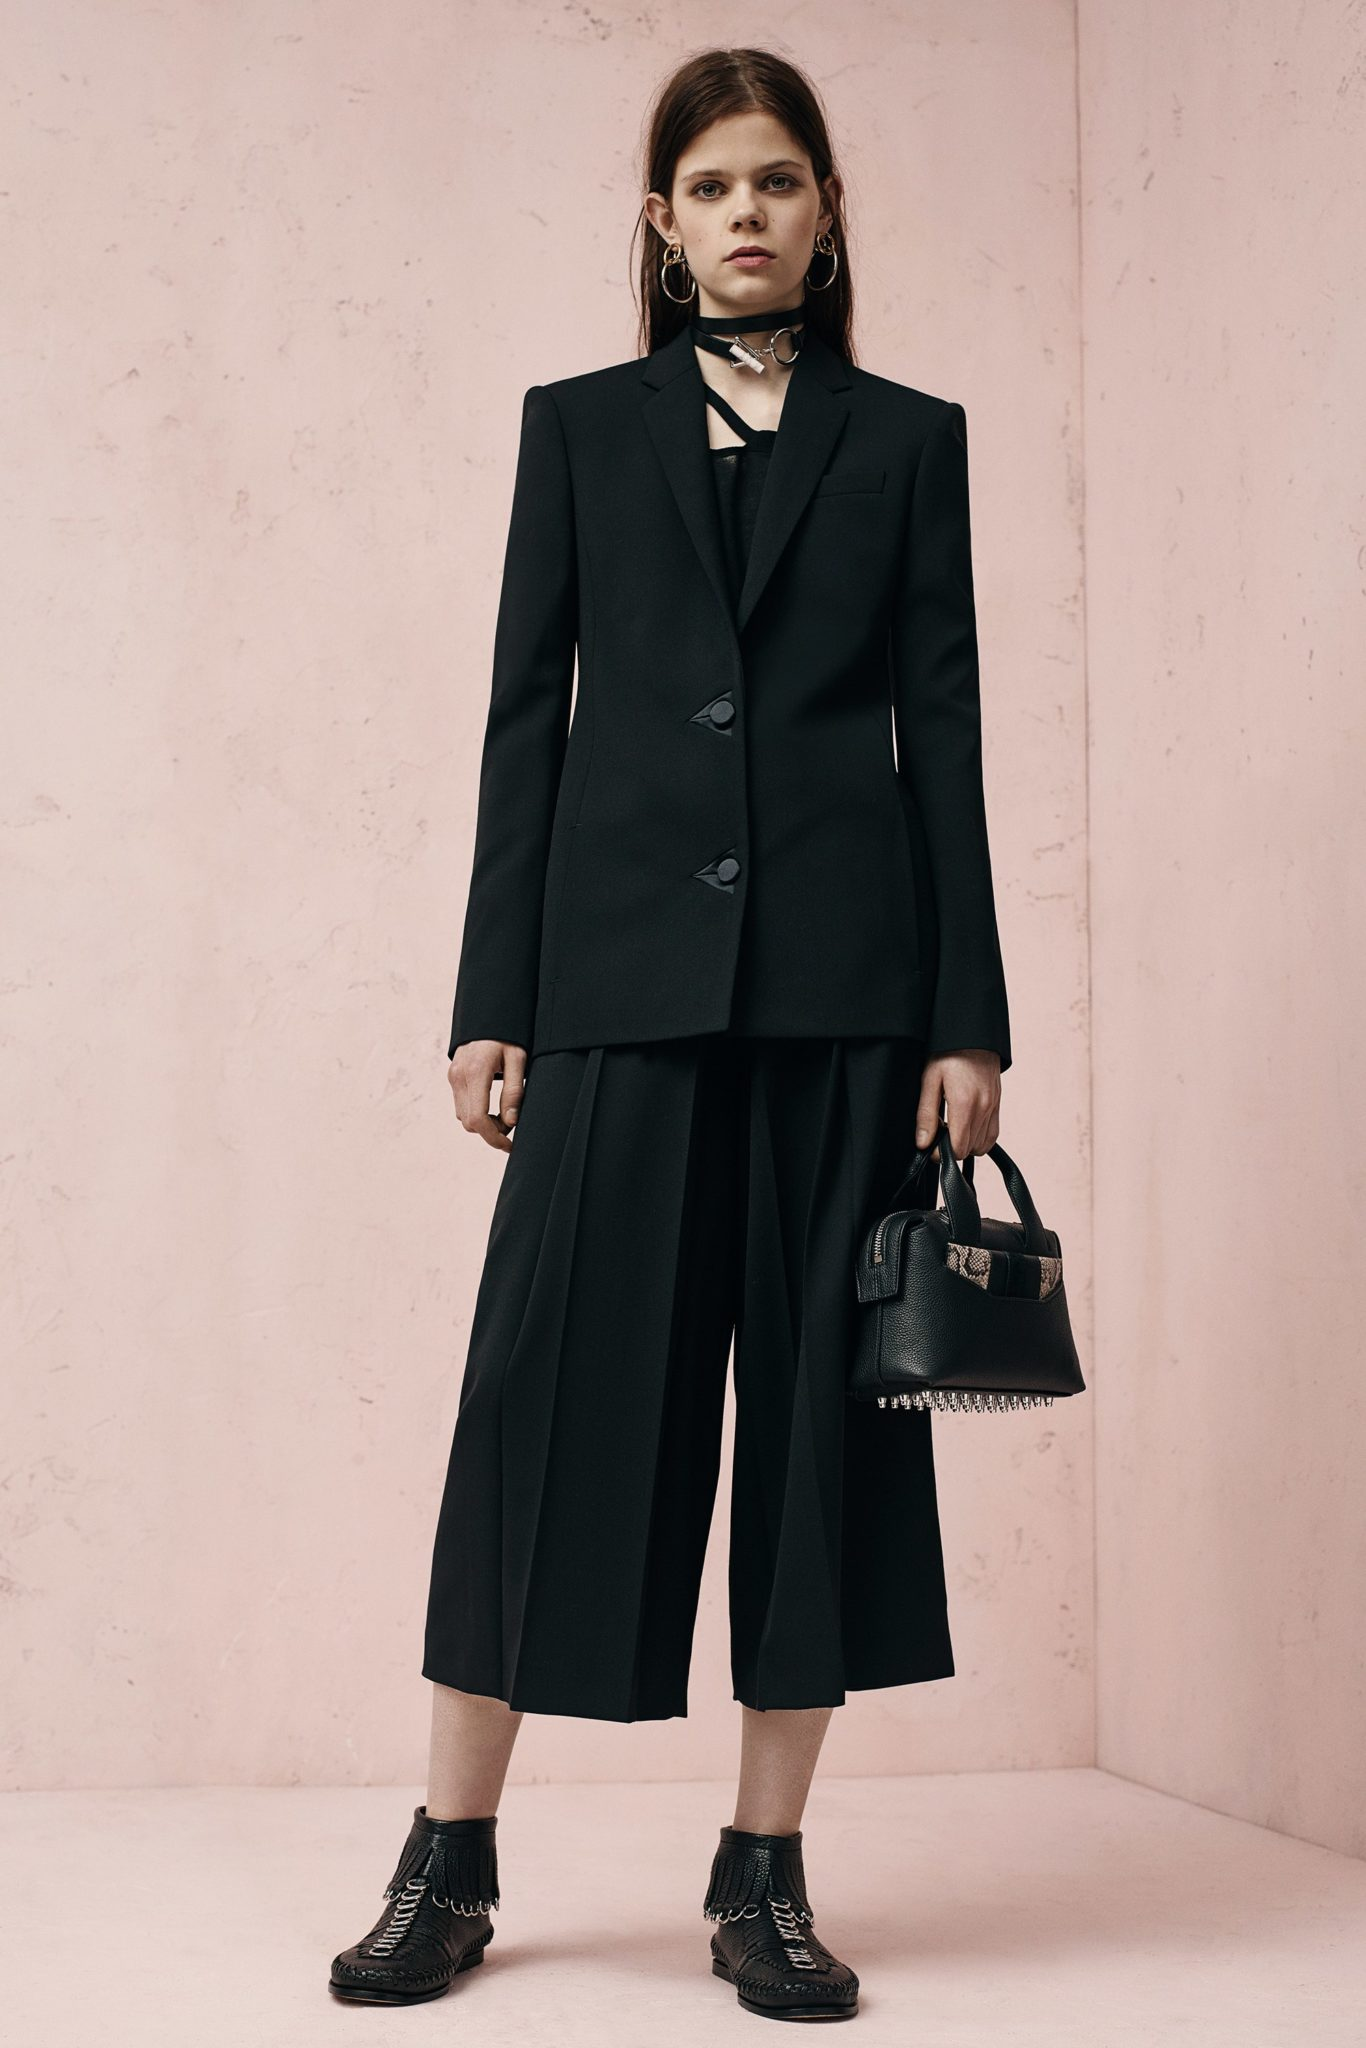 Mm6 maison margiela pre-fall collection